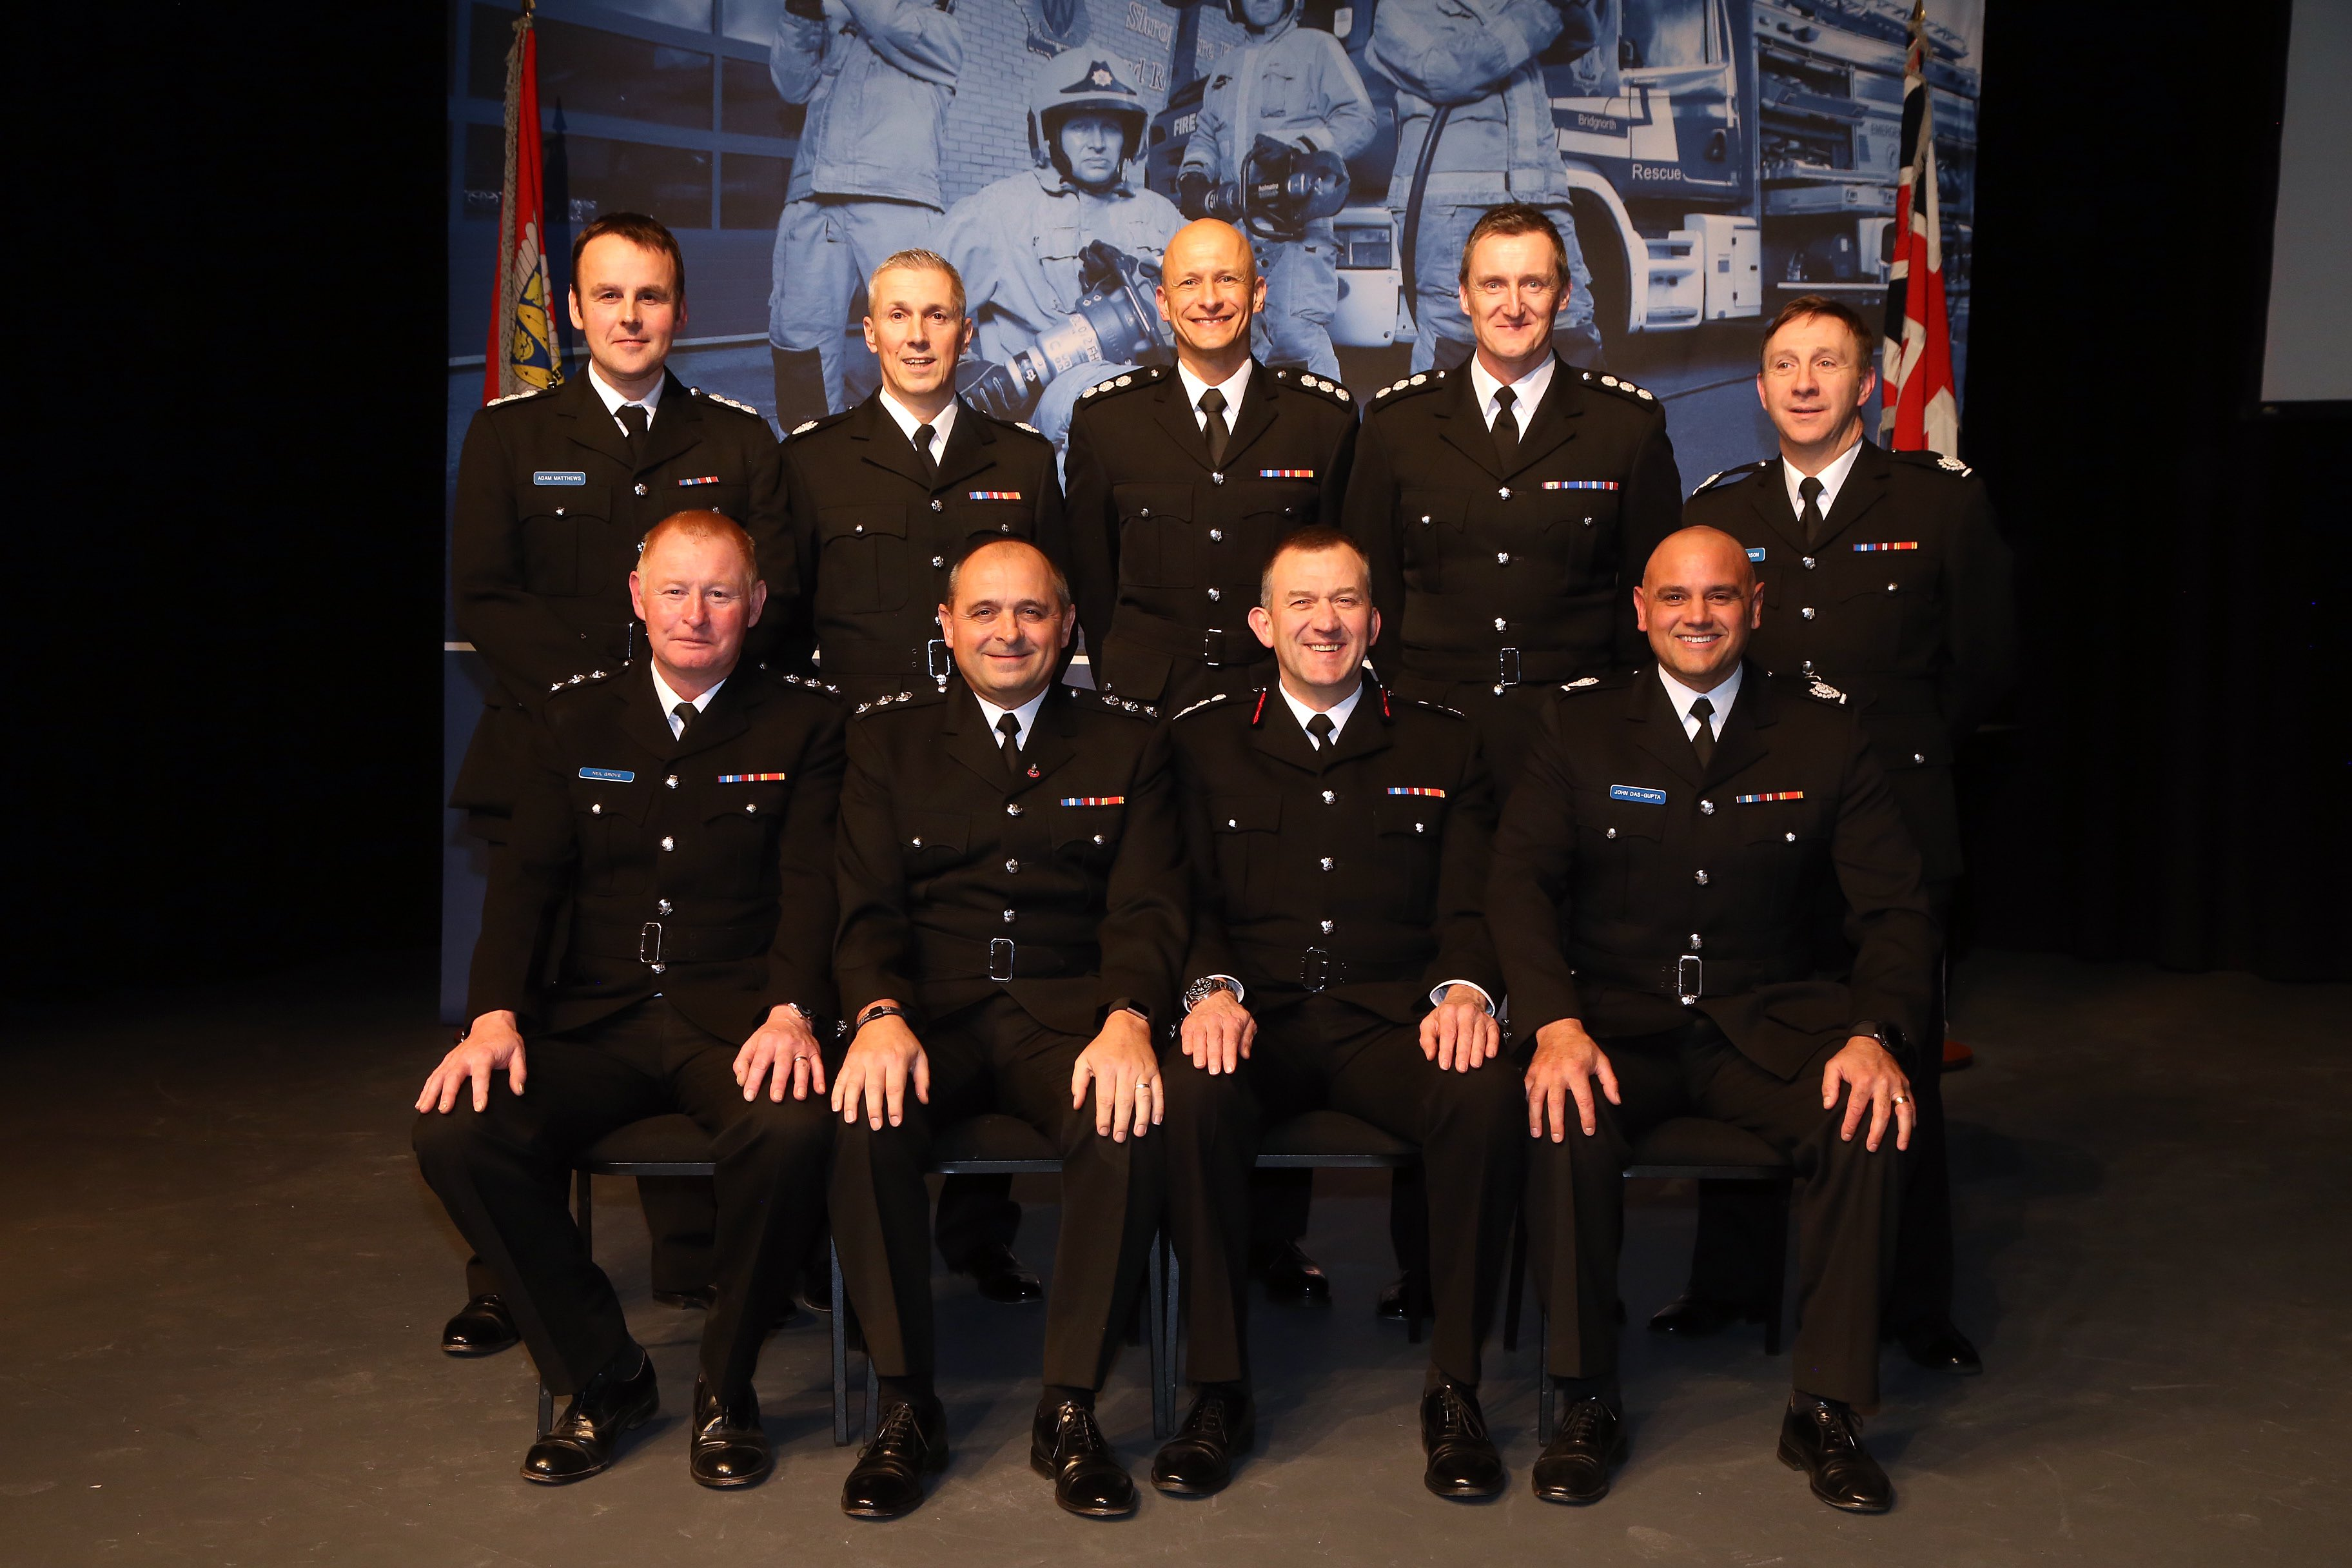 Senior officers at Shropshire Fire and Rescue Service at the Celebration of Success event